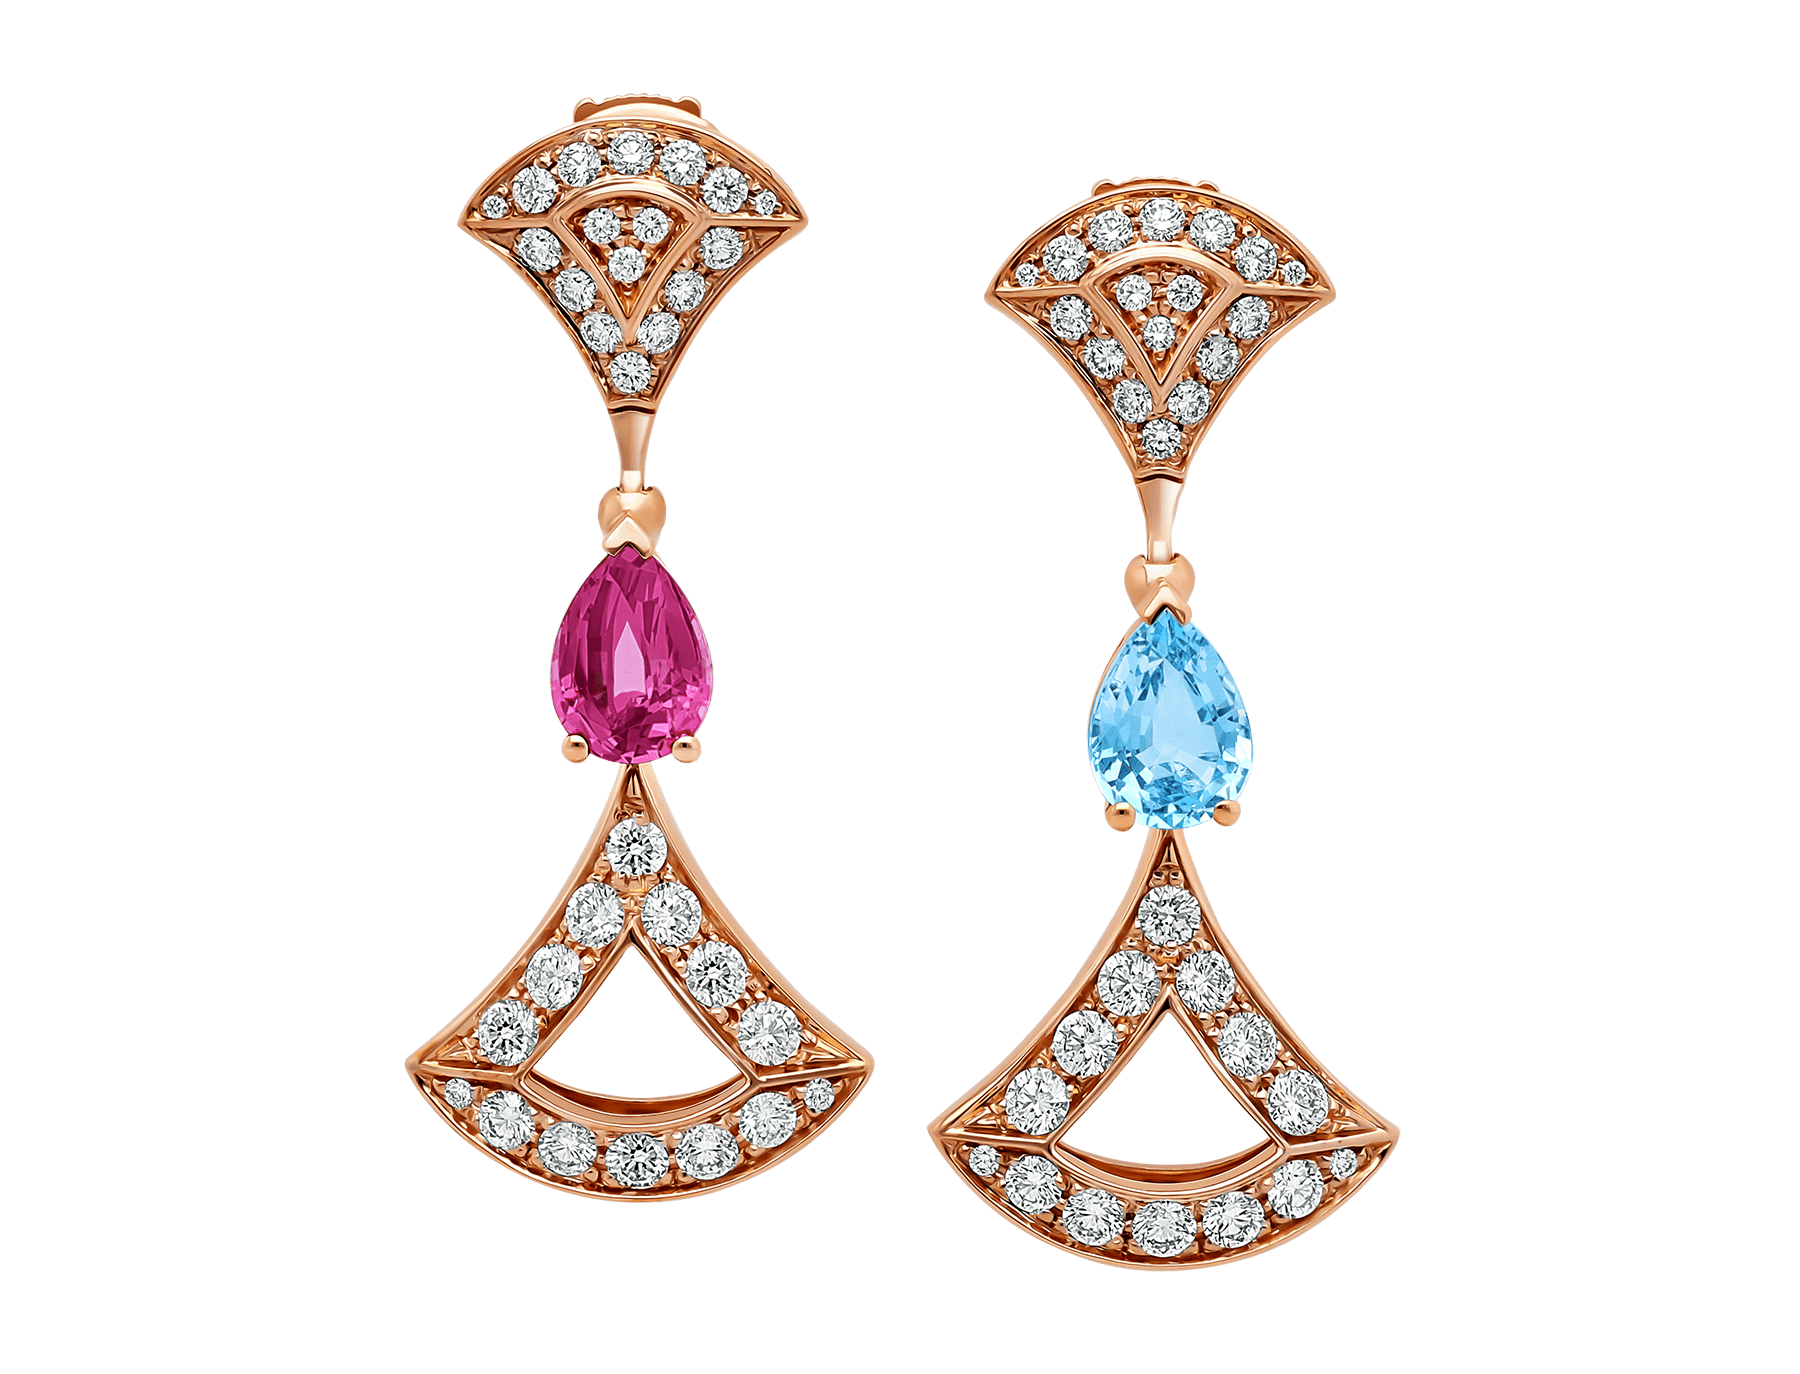 DIVAS' DREAM 18 kt rose gold earrings set with coloured gemstones and pavé diamonds 355620 image 1